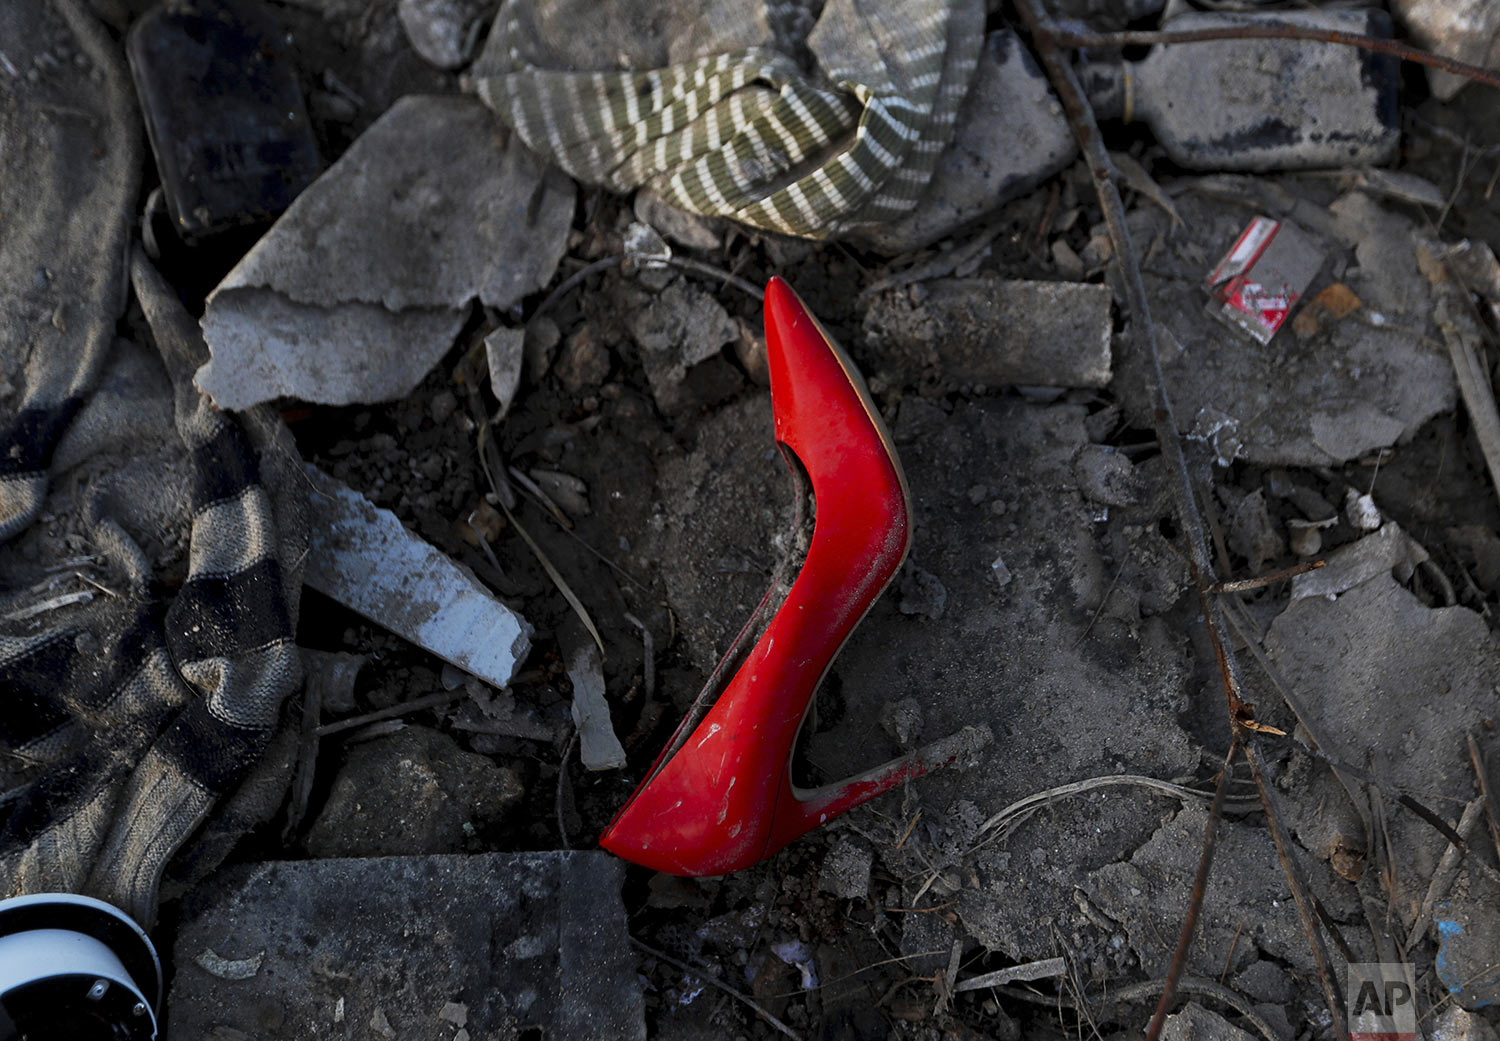 A abandoned high heel shoe lays in the mud in the aftermath of Hurricane Dorian in an area called The Mudd, in Marsh Harbor, Abaco Island, Bahamas, Sunday, Sept. 8, 2019. Dorian was the most powerful hurricane in the northwestern Bahamas' recorded history. (AP Photo/Fernando Llano)